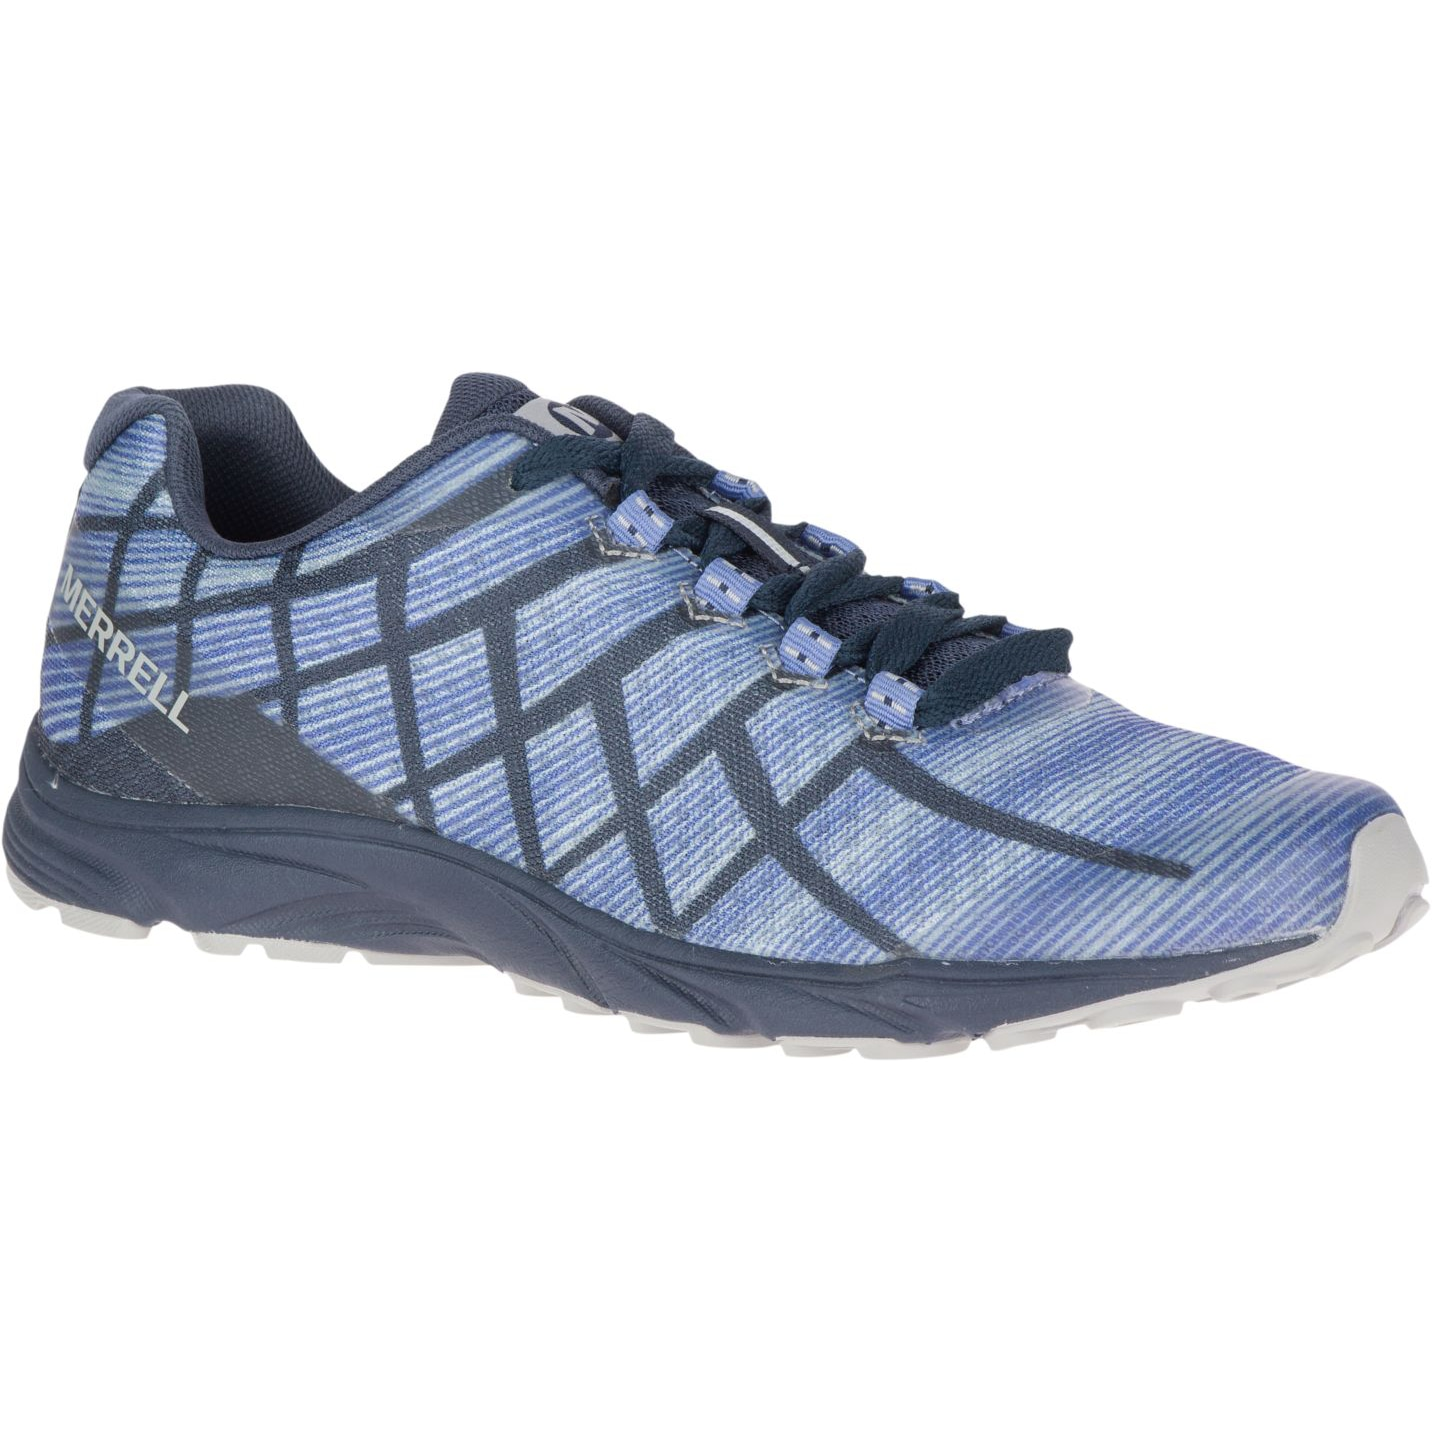 Reverb Shoe - Women's